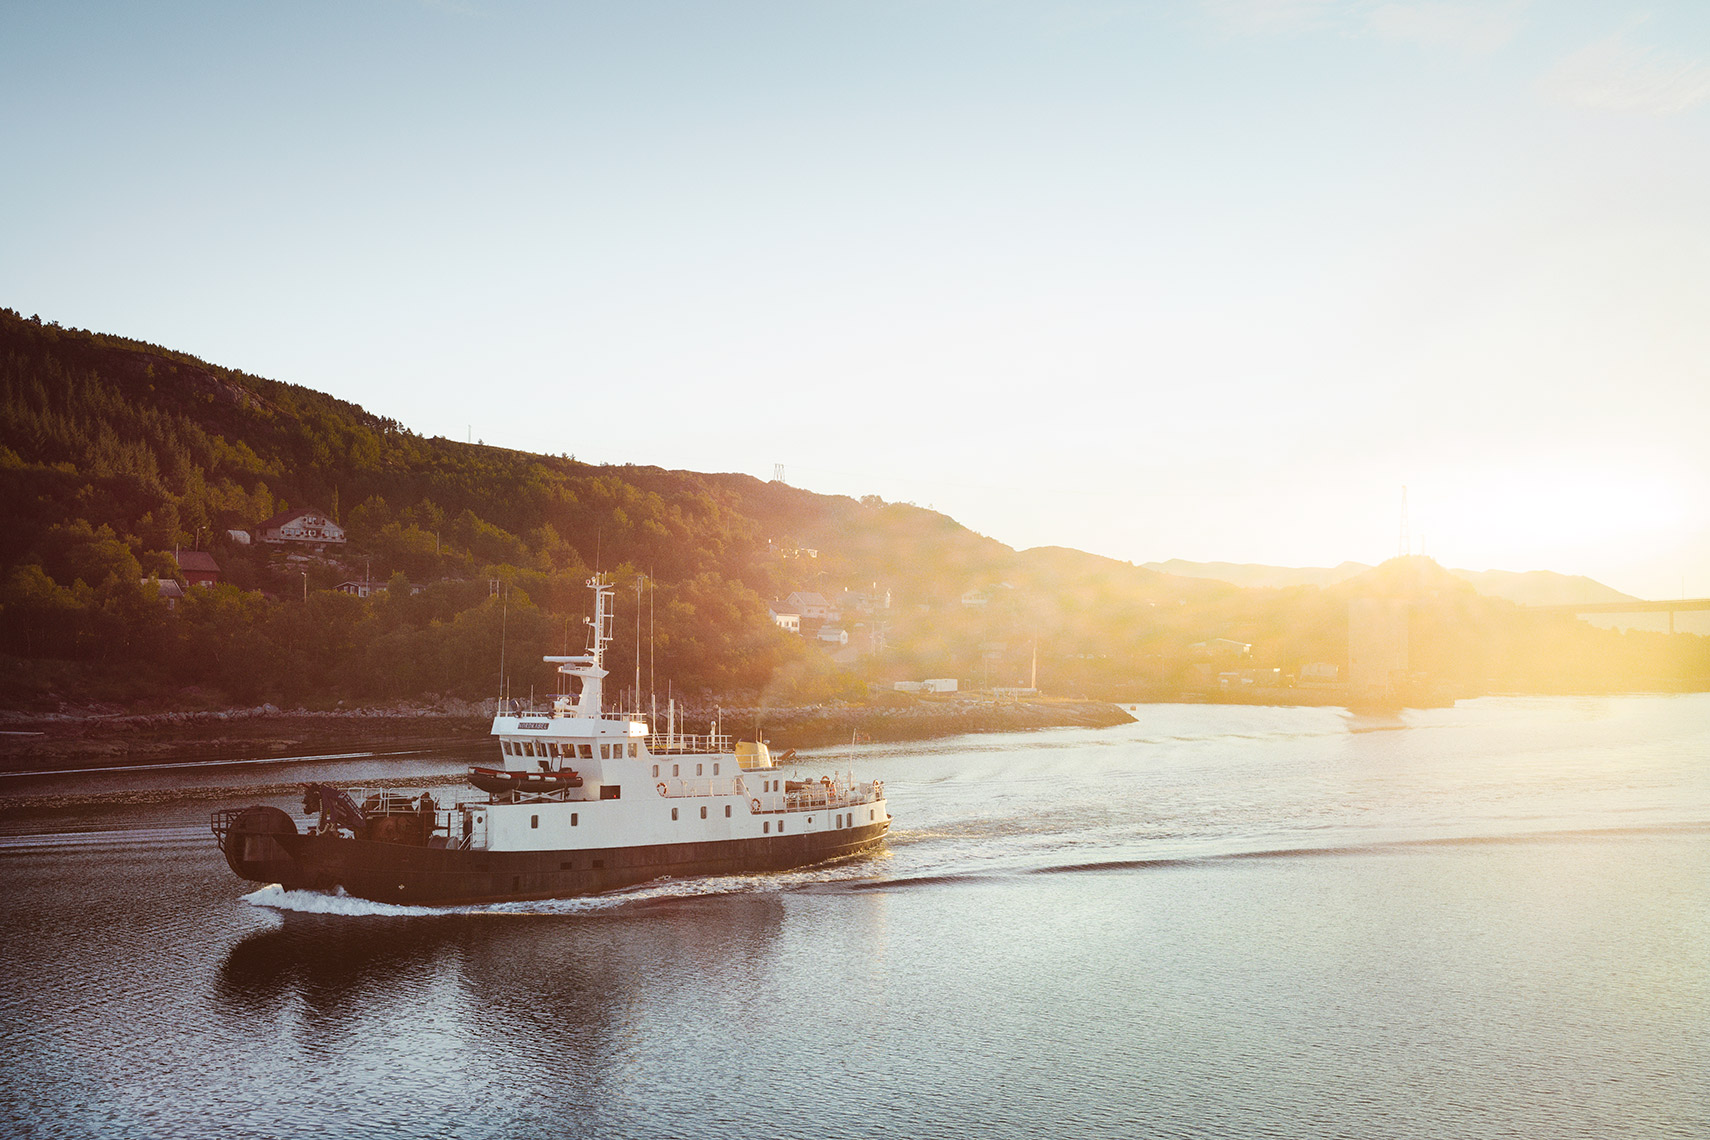 NORWAY_BOAT_SUNRISE-16724.jpg